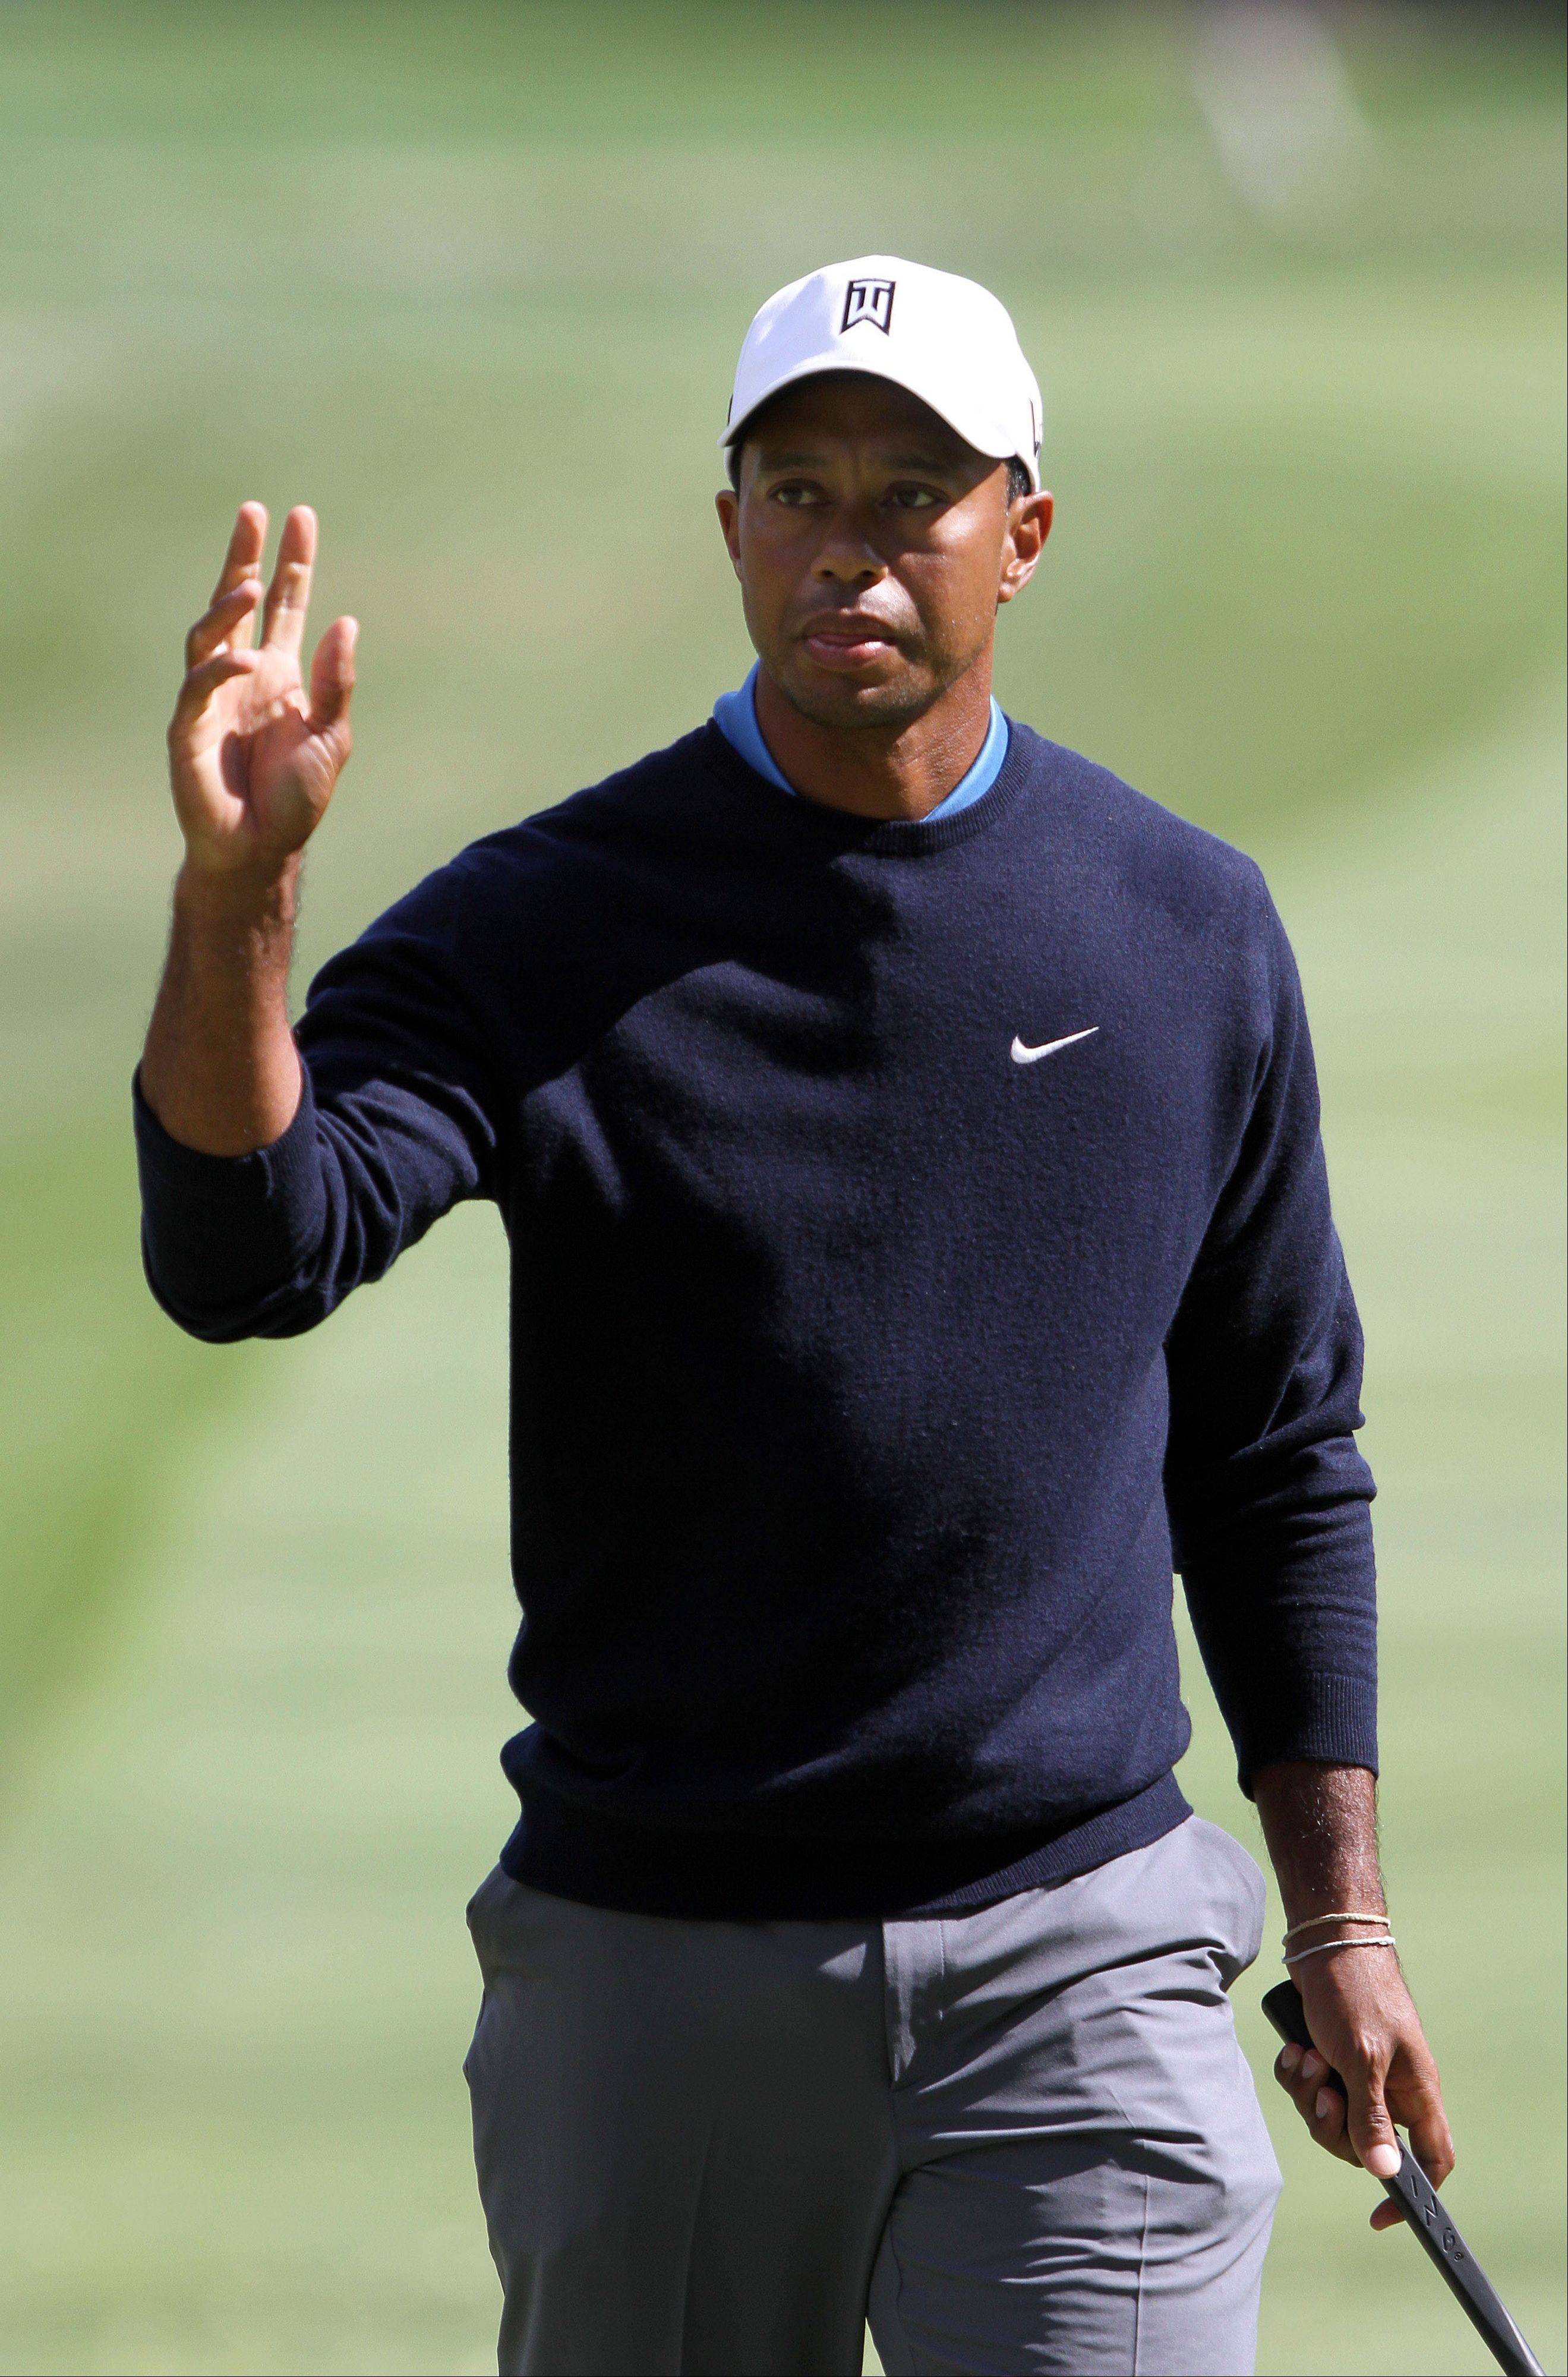 Tiger woods acknowledges the crowd after making a birdie on the 9th hole.